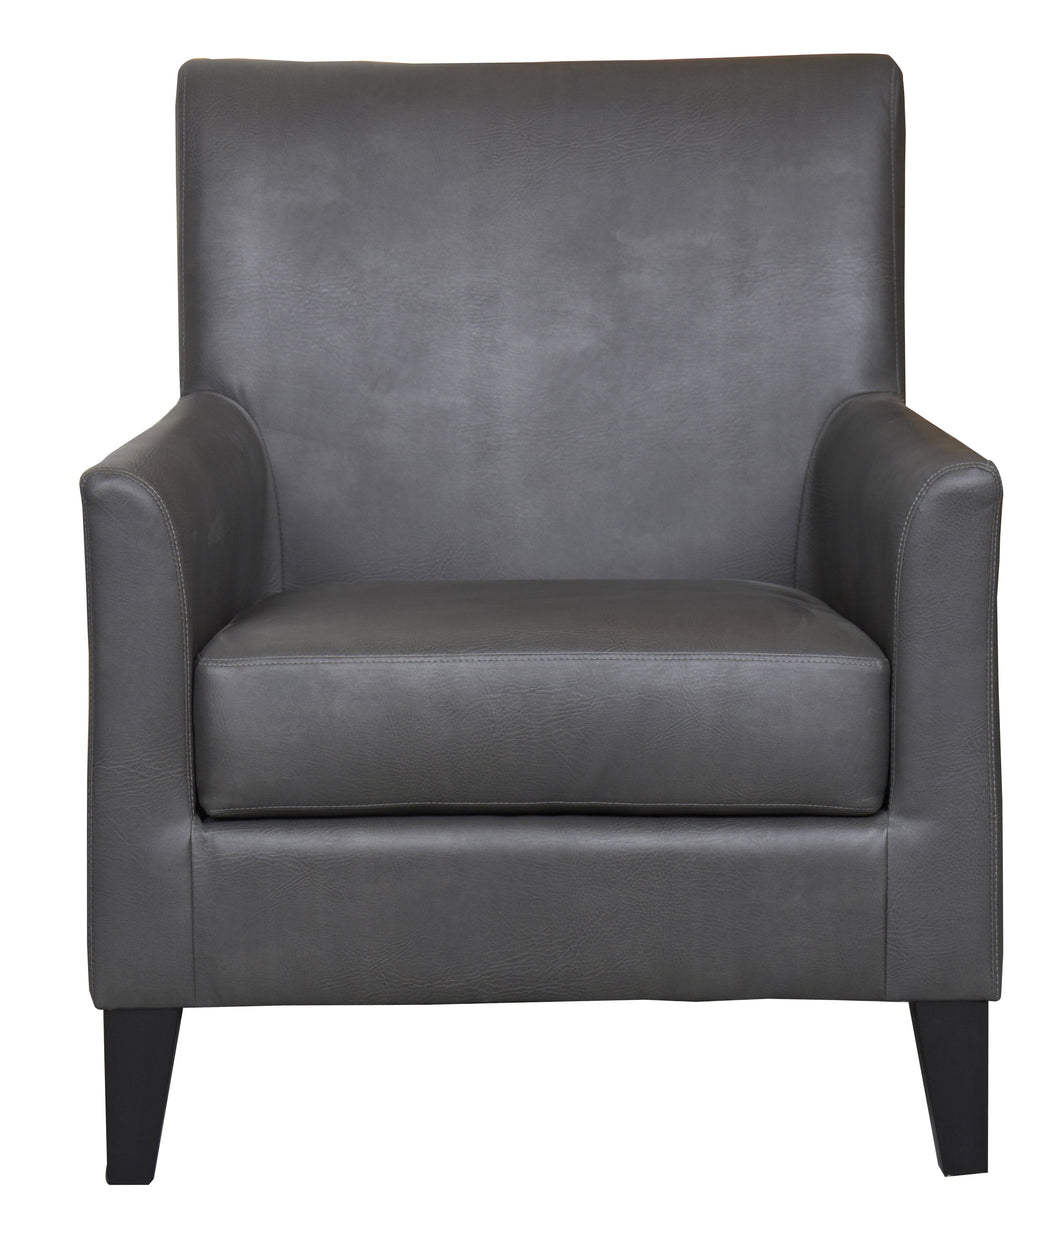 Accent Chair - Grey